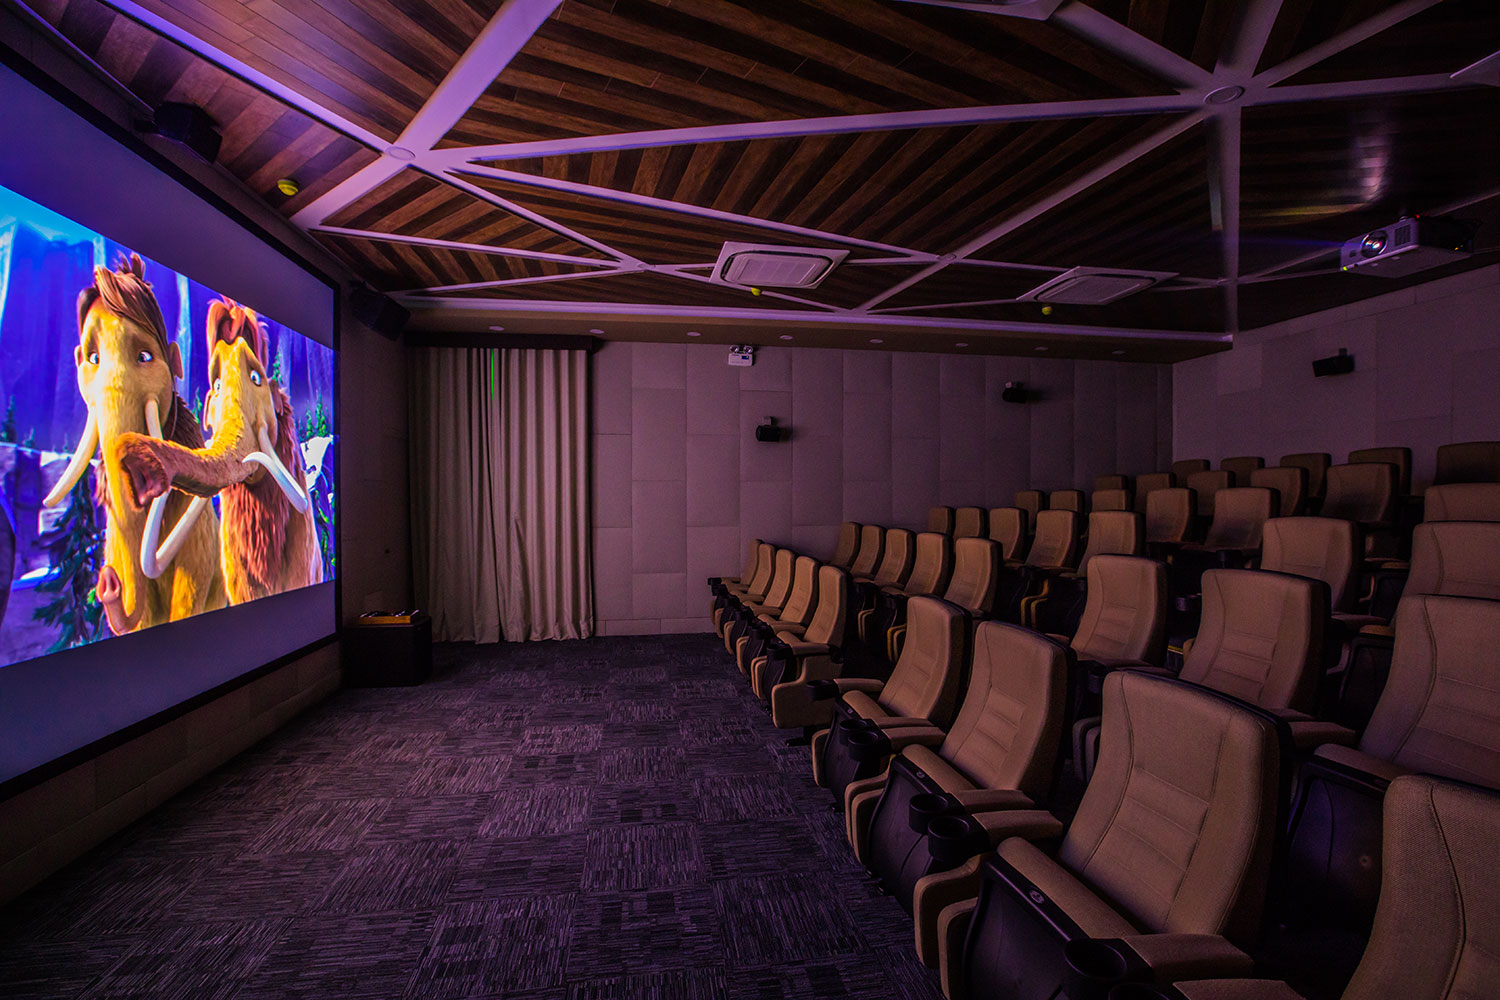 3D Cinema - The Anam is the first resort in Vietnam to feature a 3D Cinema. With seating for 60, the movie theatre screens a wide selection of movies daily.